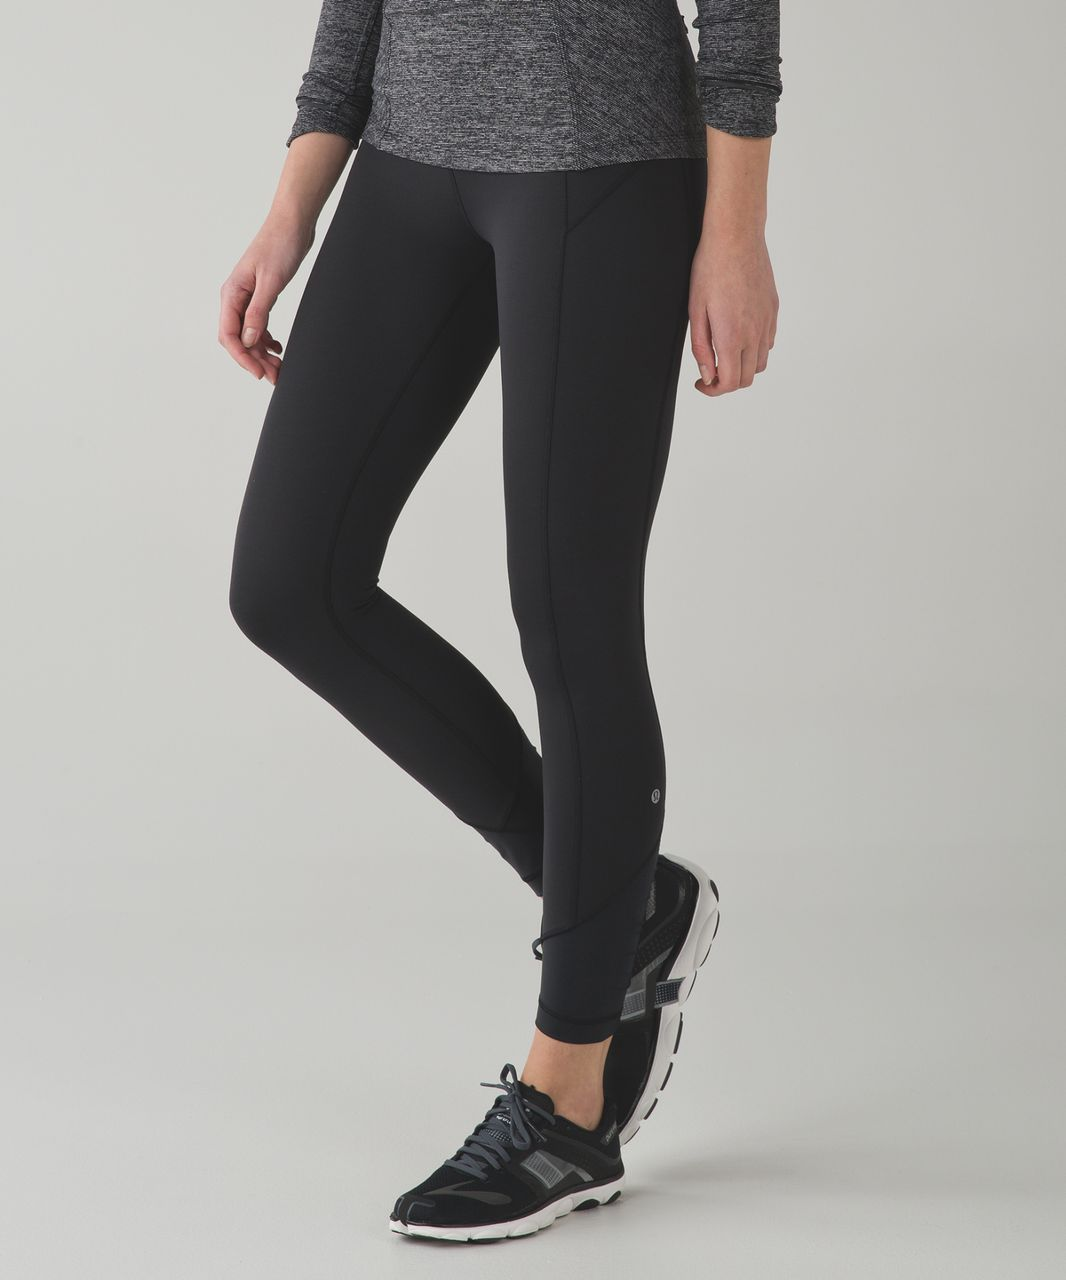 68b131b50 Lululemon Pace Queen Tight - Black - lulu fanatics